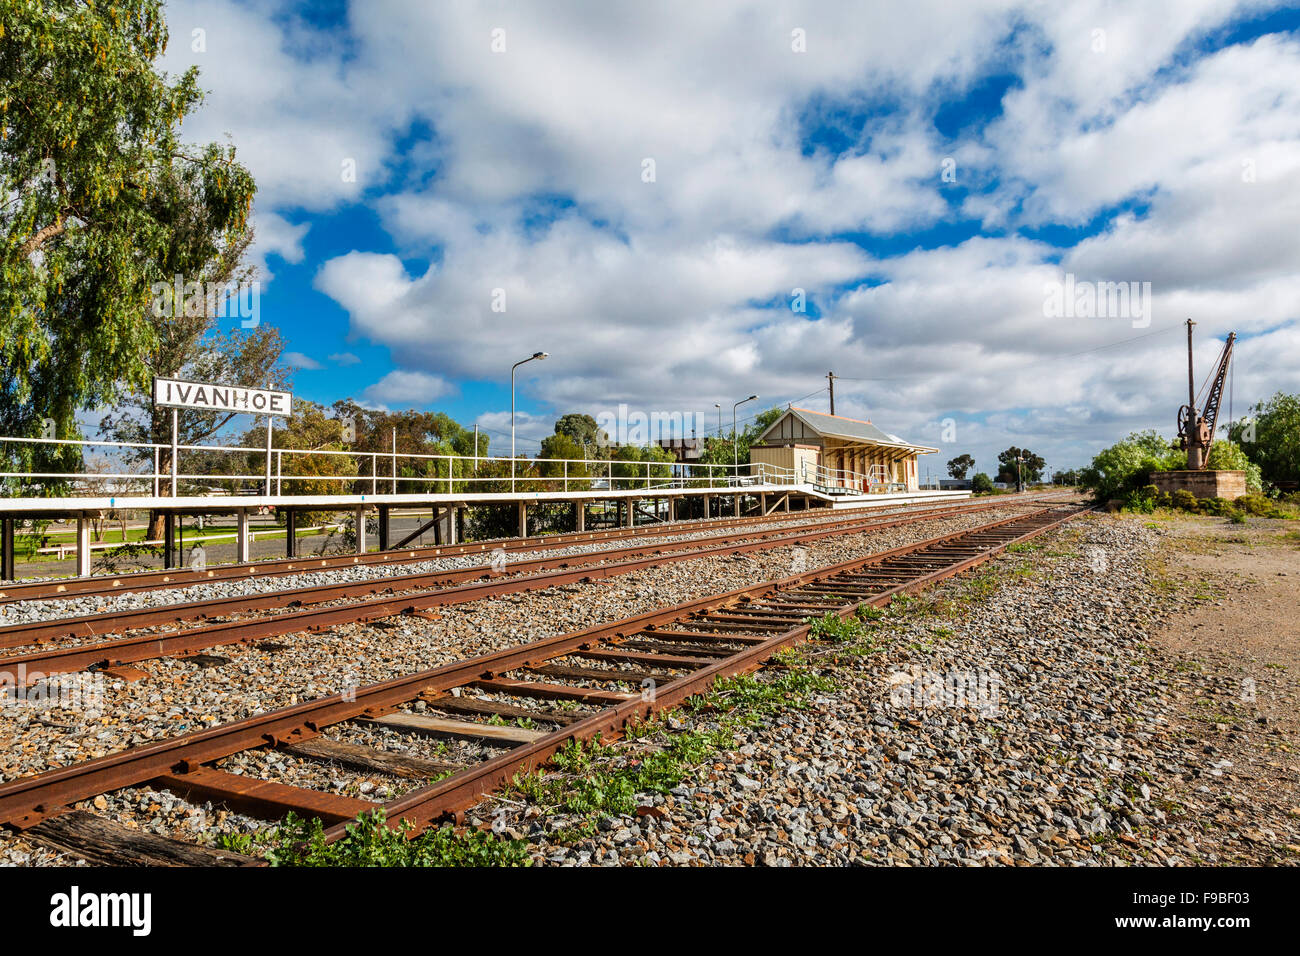 Australia, Far West New South Wales, Ivanhoe railway station - Stock Image